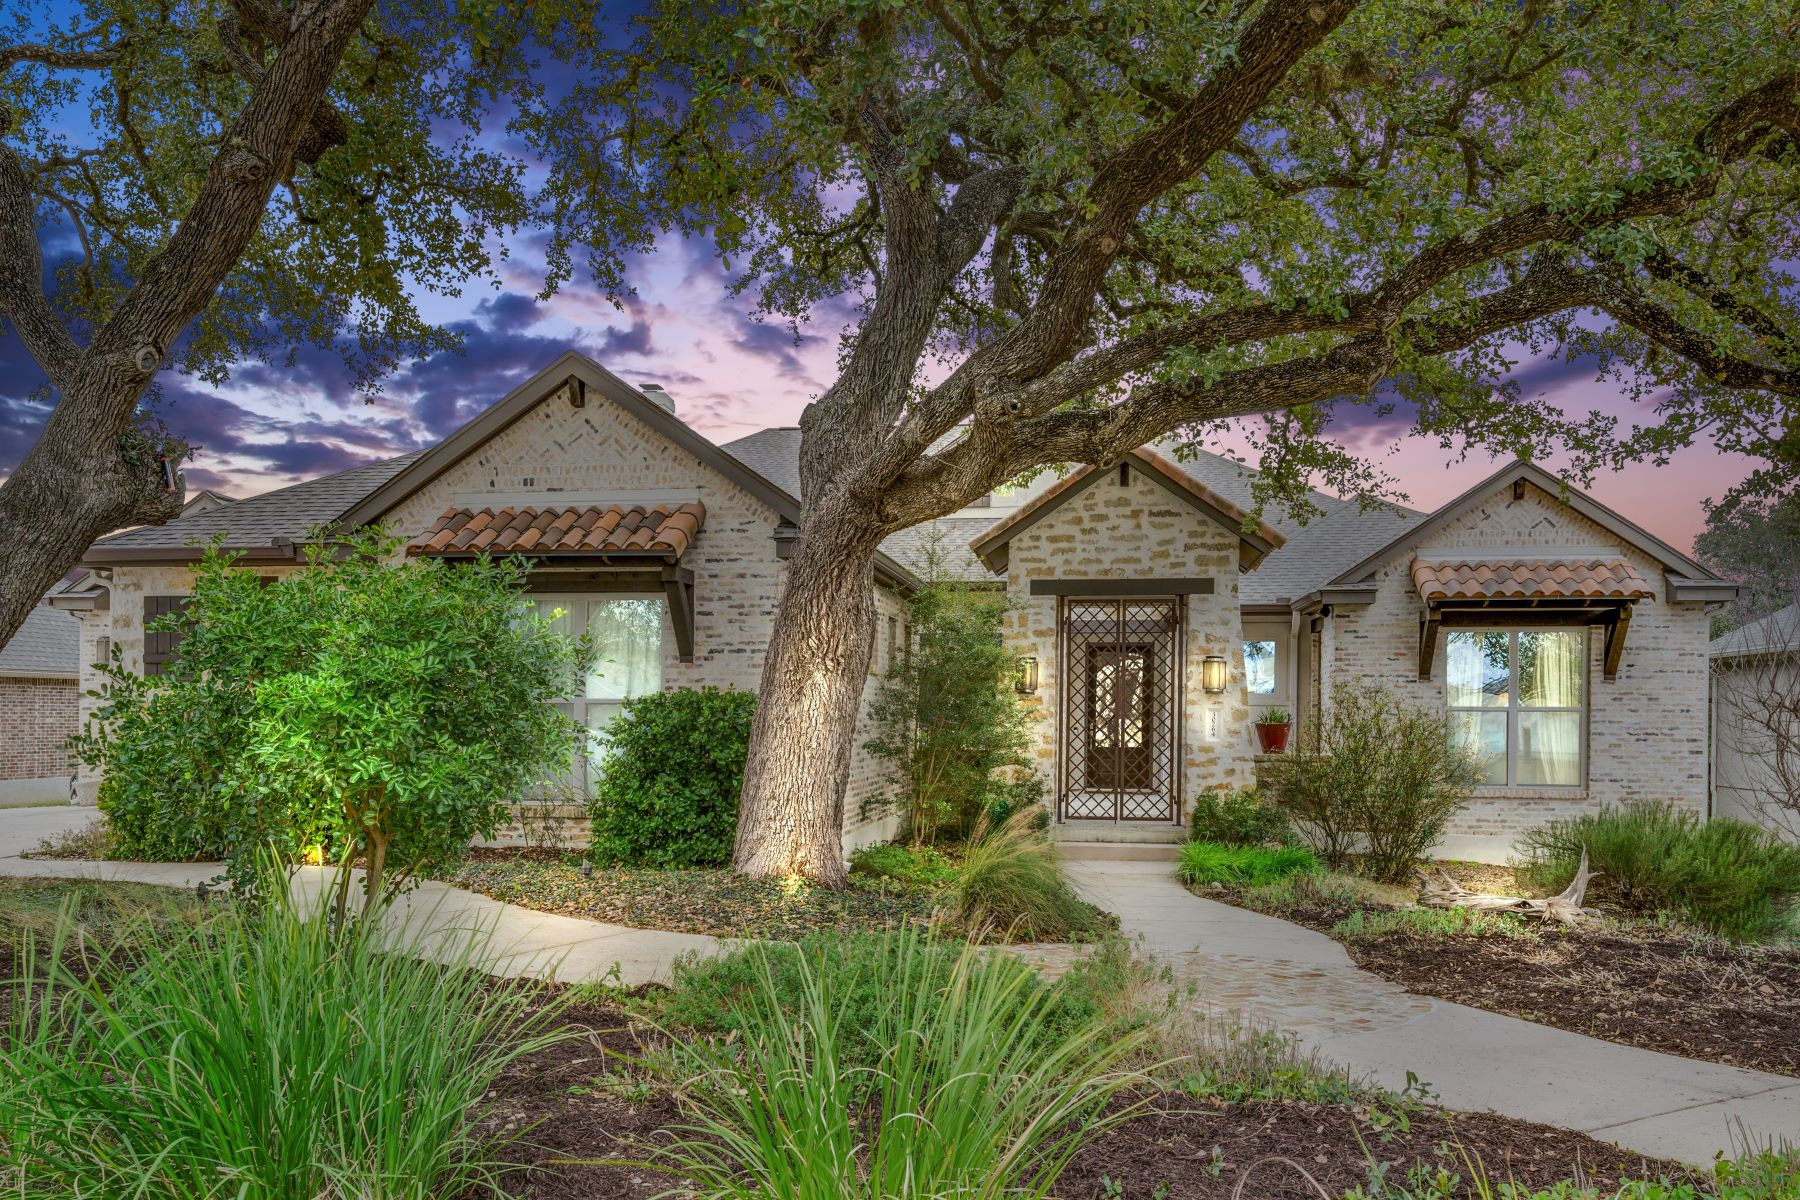 Single Family Homes for Active at 30264 Setterfeld Circle, Fair Oaks Ranch, TX 78015 30264 Setterfeld Circle Fair Oaks Ranch, Texas 78015 United States